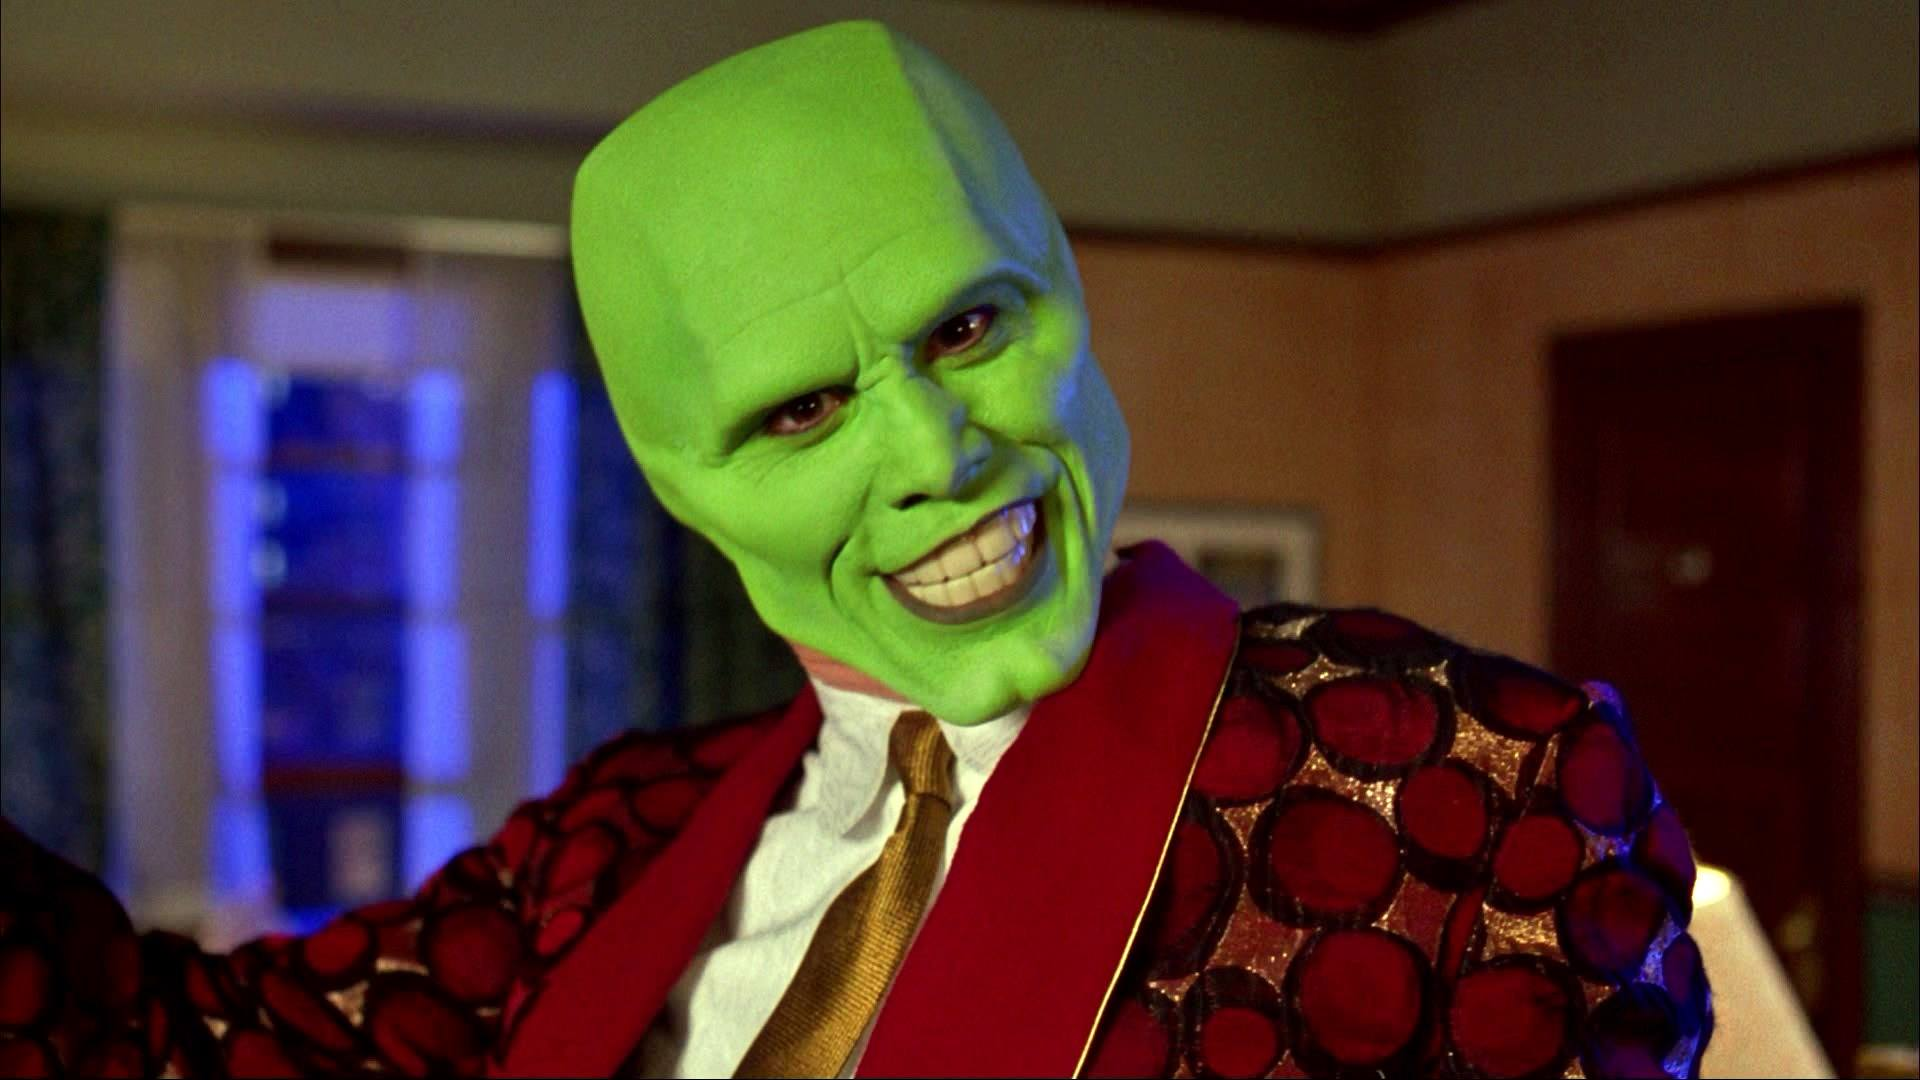 """""""It's party time! p-a-r-t---y? Because I gotta!"""" The Mask    It's the film that made all teenage boys fance Cameron Diaz and everyone wish they had a mask that could turn them from a loser into the coolest cat in town. Come and join us for a free screening of this 90's classic, + we'll throw together a little drinking game to make it that bit more enjoyable!    Free entry - Doors 6pm - Screening starts around 7pm. Come down early to reserve your seat.    """"Somebody stop me!"""""""